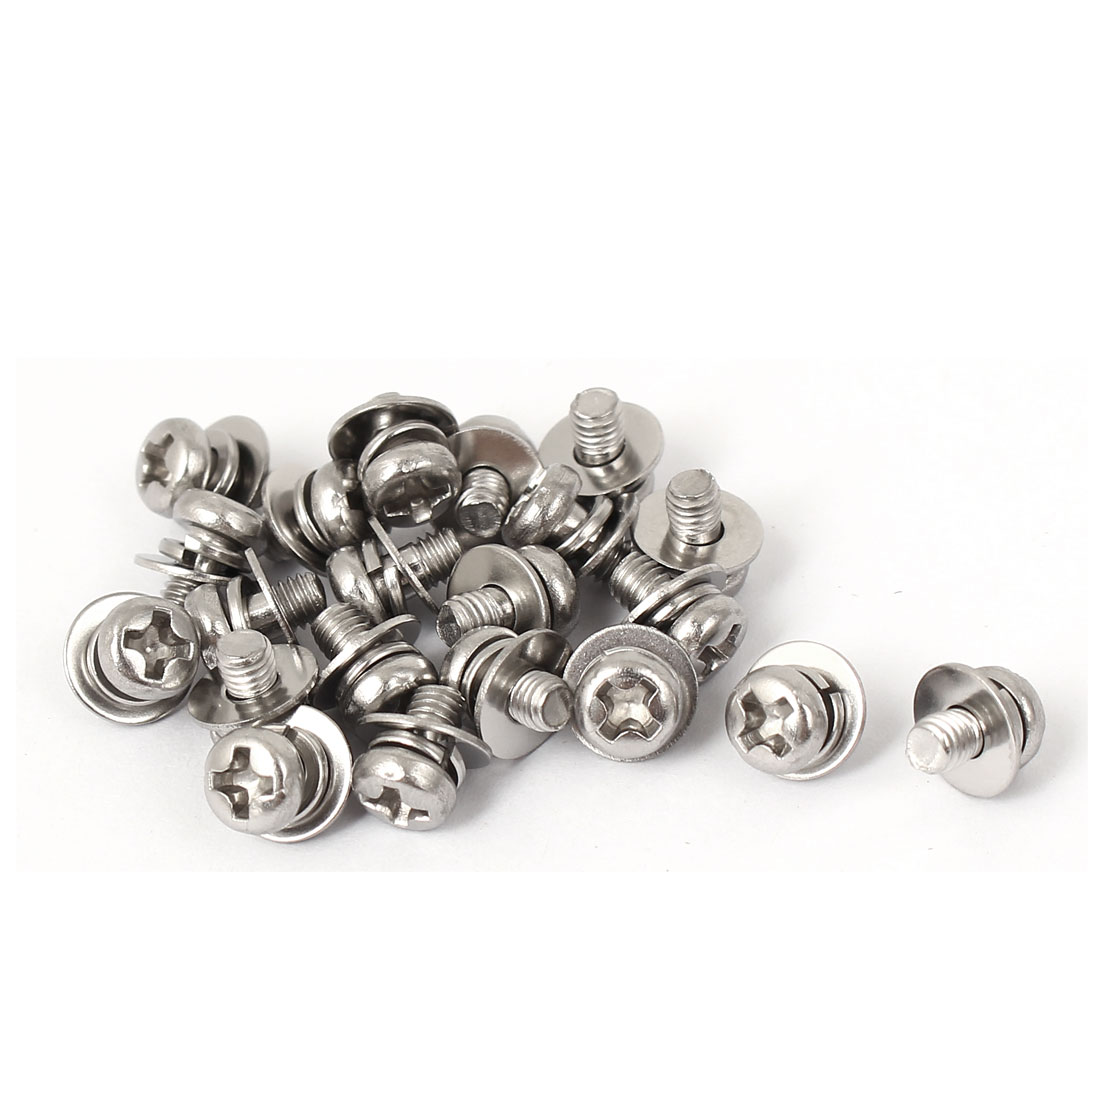 21PCS M3 x 5mm 304 Stainless Steel Phillips Round Head Machine Screws w Washers